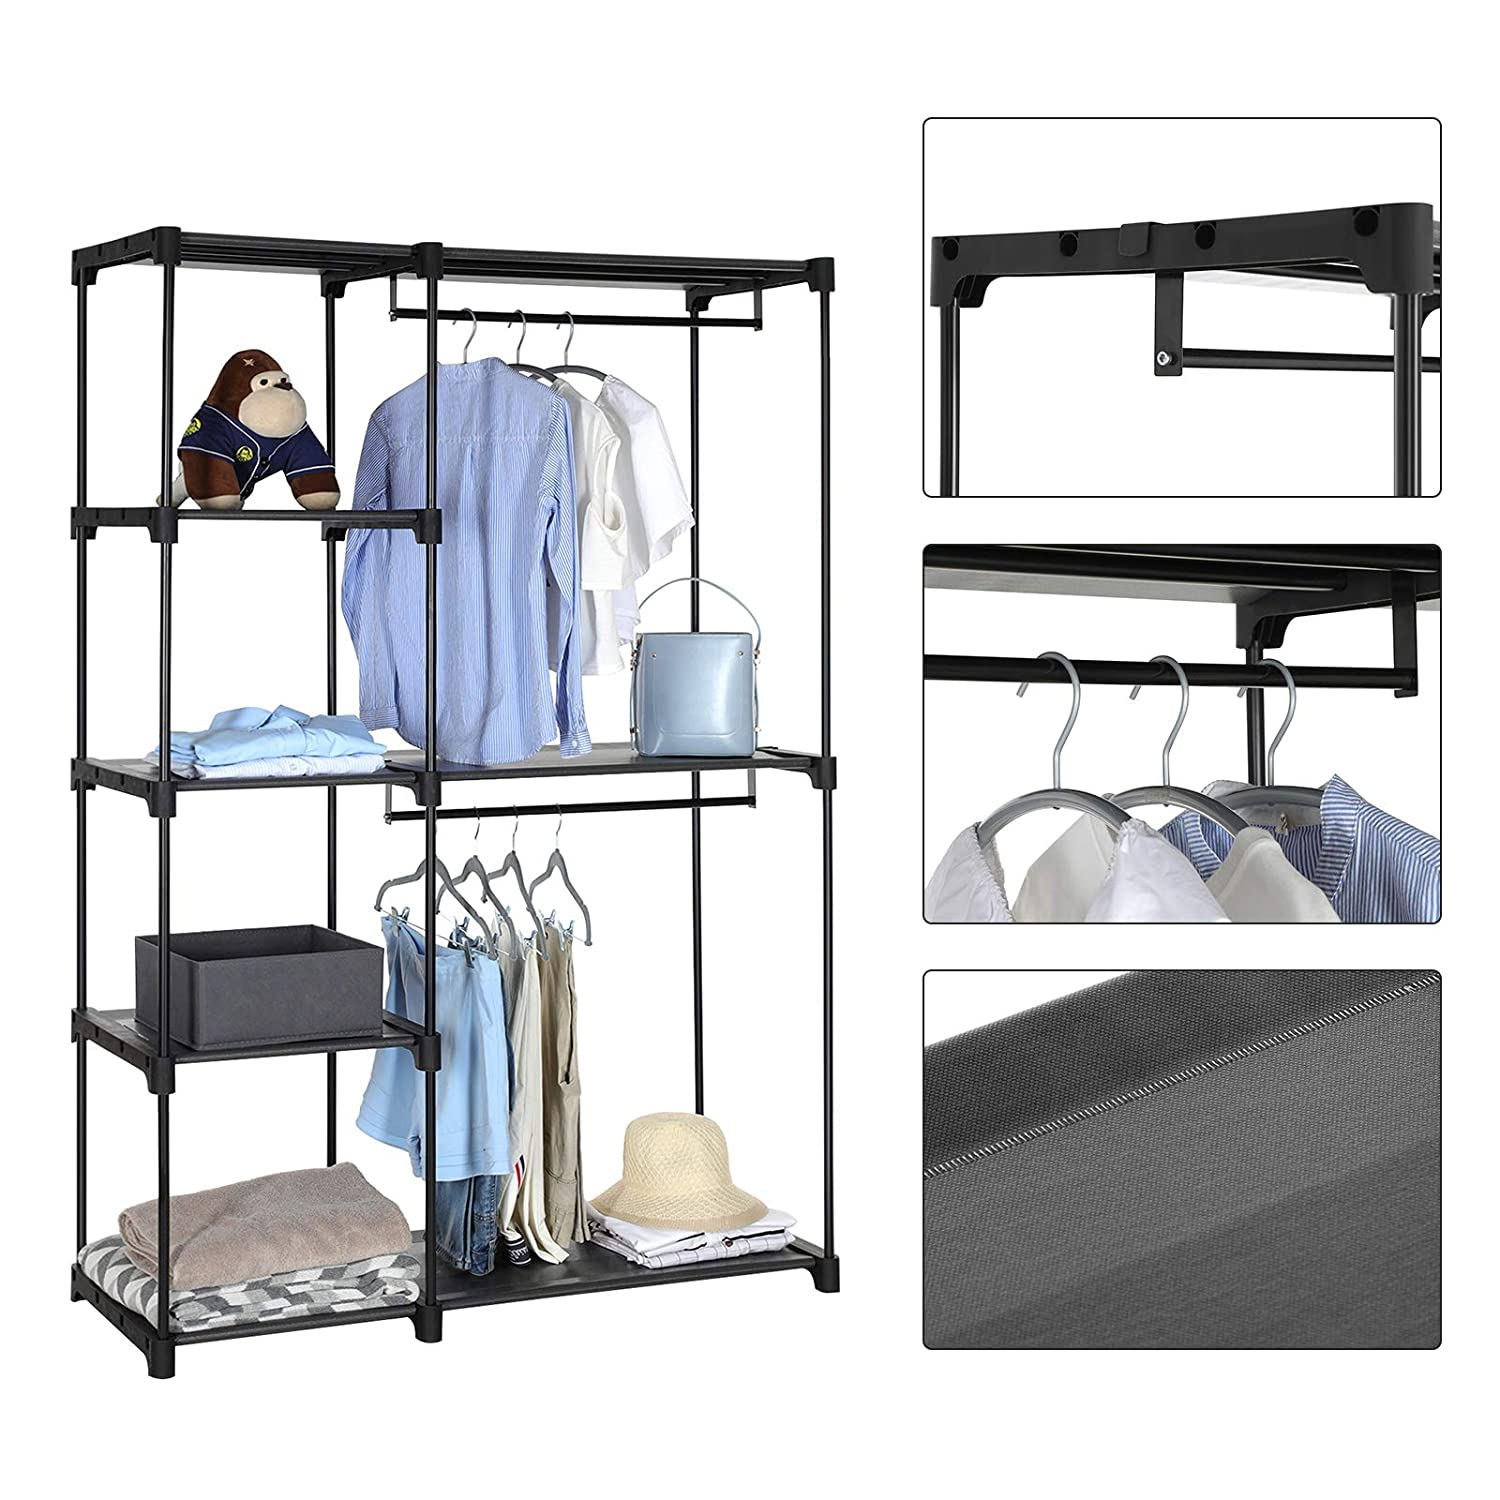 Study 112 x 43 x 165 cm SONGMICS Freestanding Wardrobe Storage Organiser Clothes Rack Stable Bedroom Black RYG24BK Cloakroom Foldable Closet Coat Rack with Clothes Rails